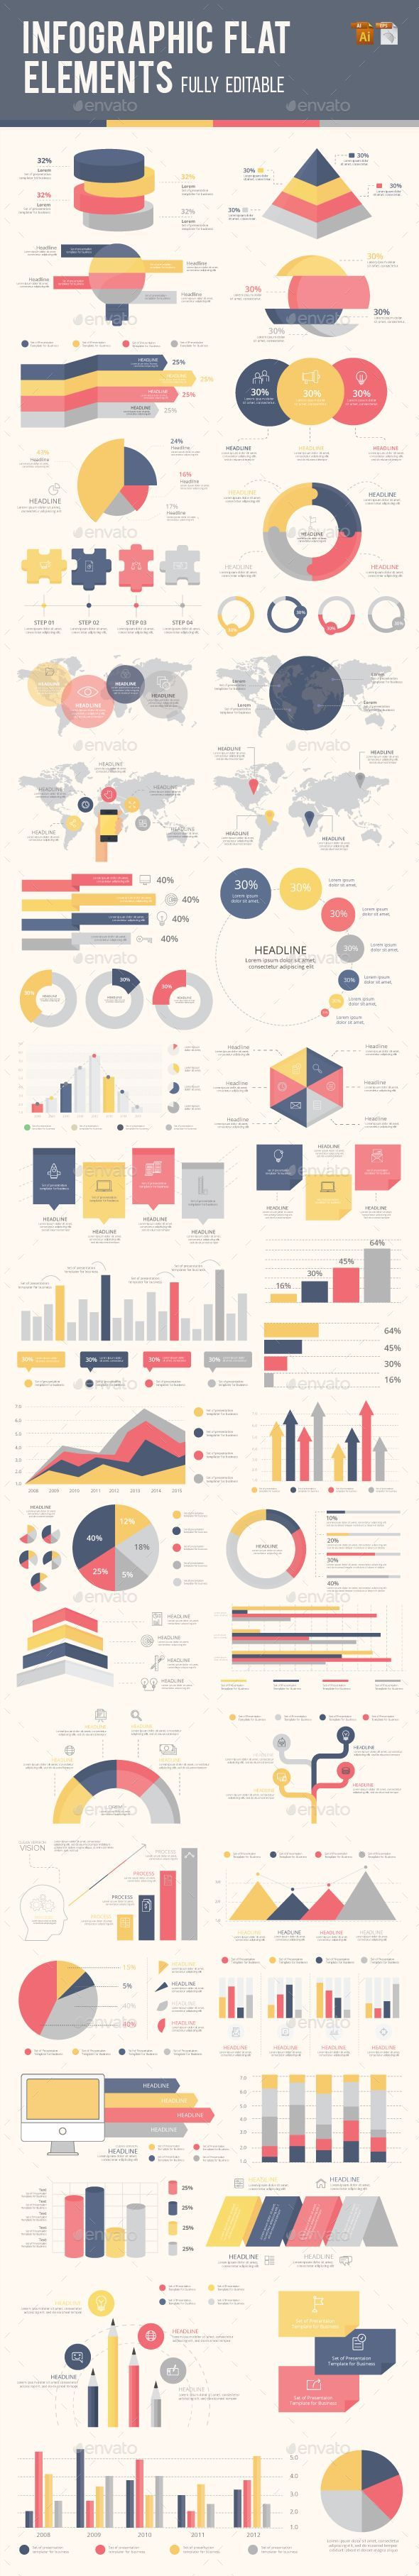 Best Infographic Flat Elements Template Vector EPS, AI Illustrator ...